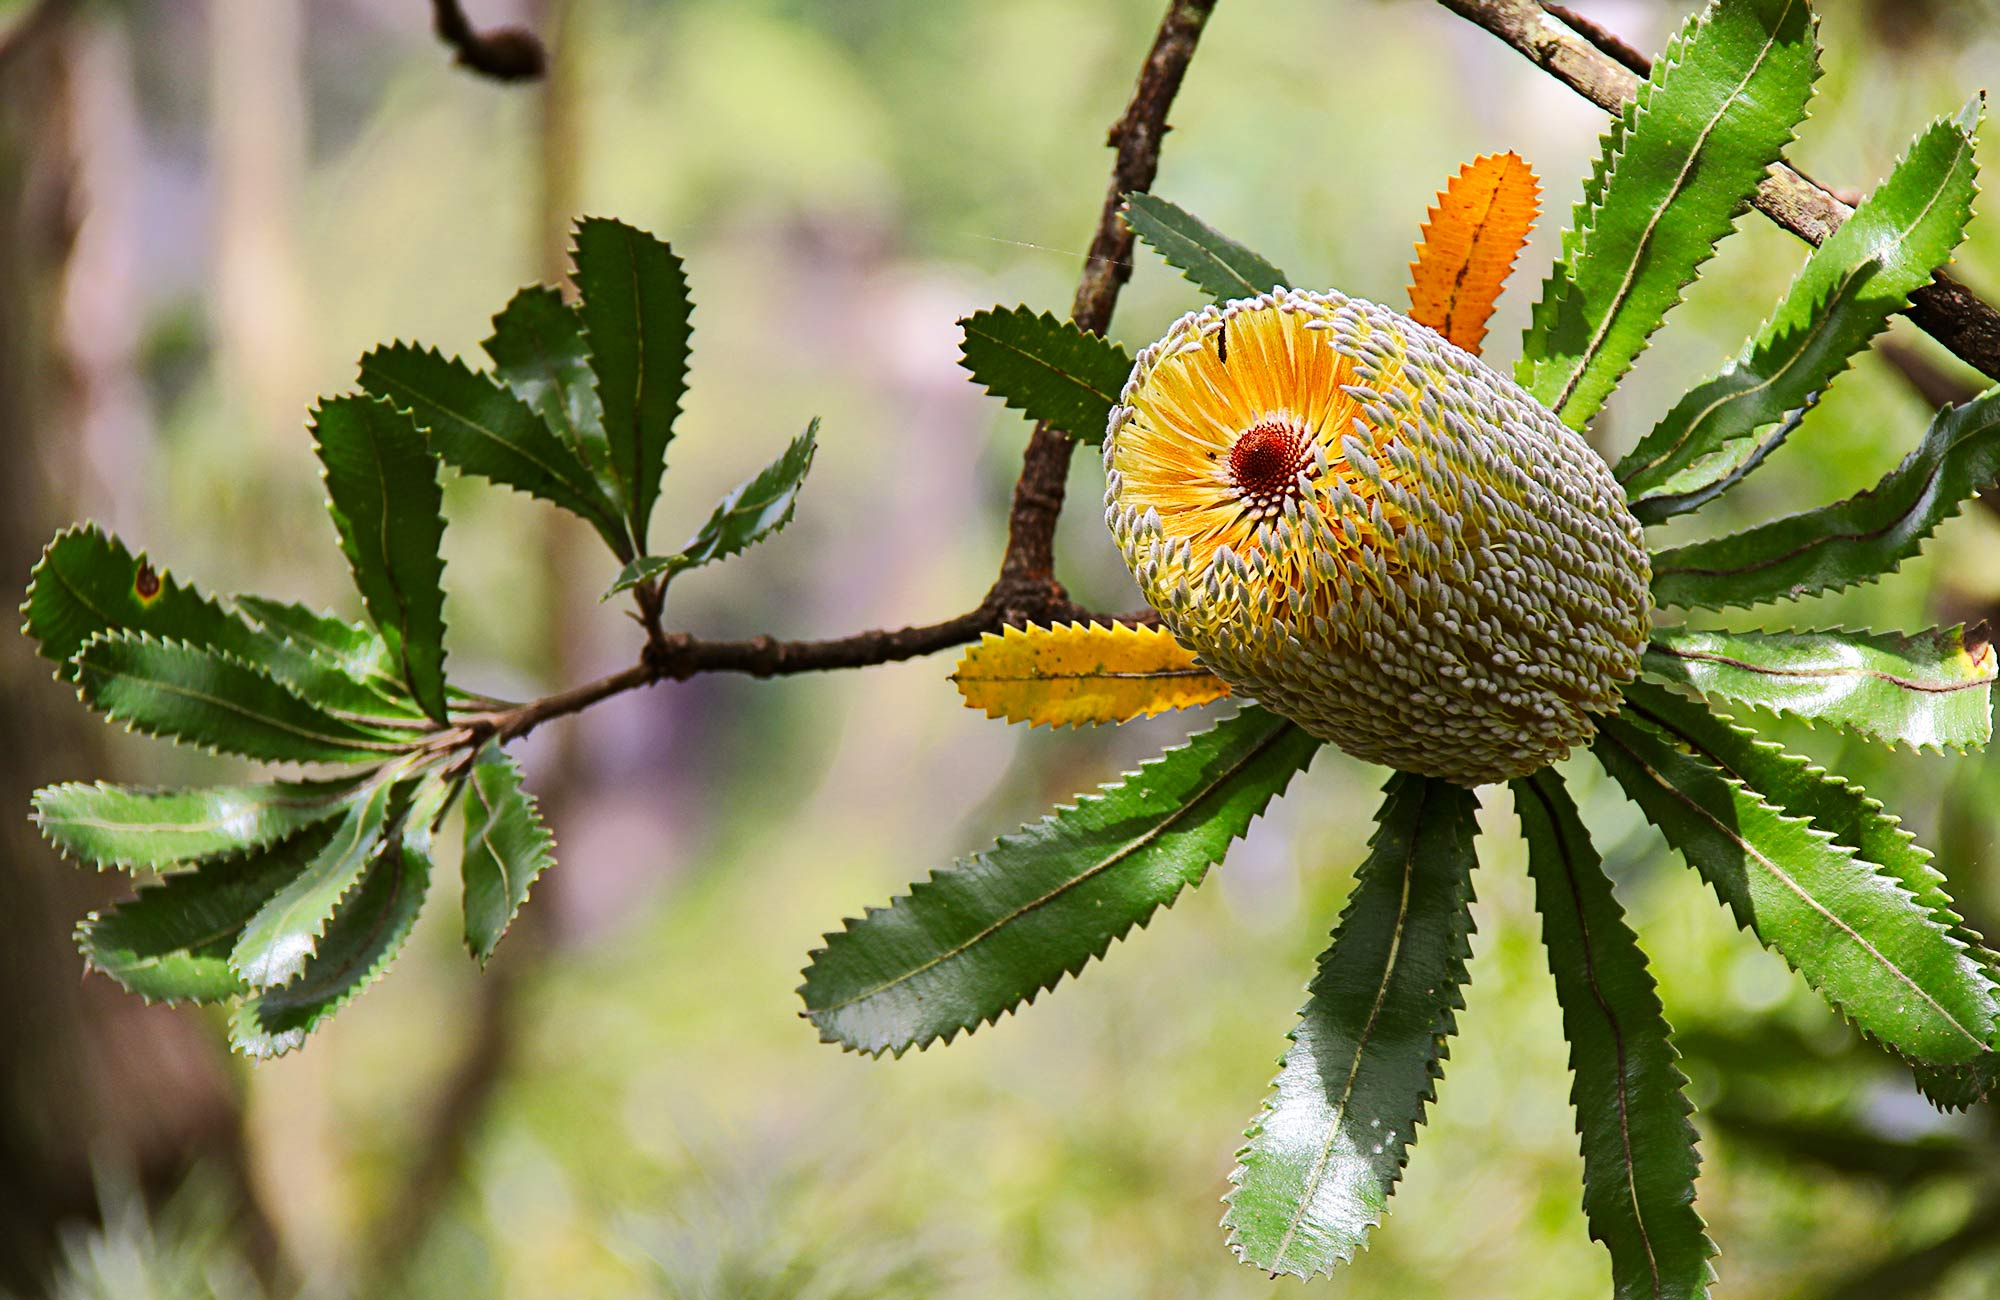 Banksia flower. Photo:John Yurasek